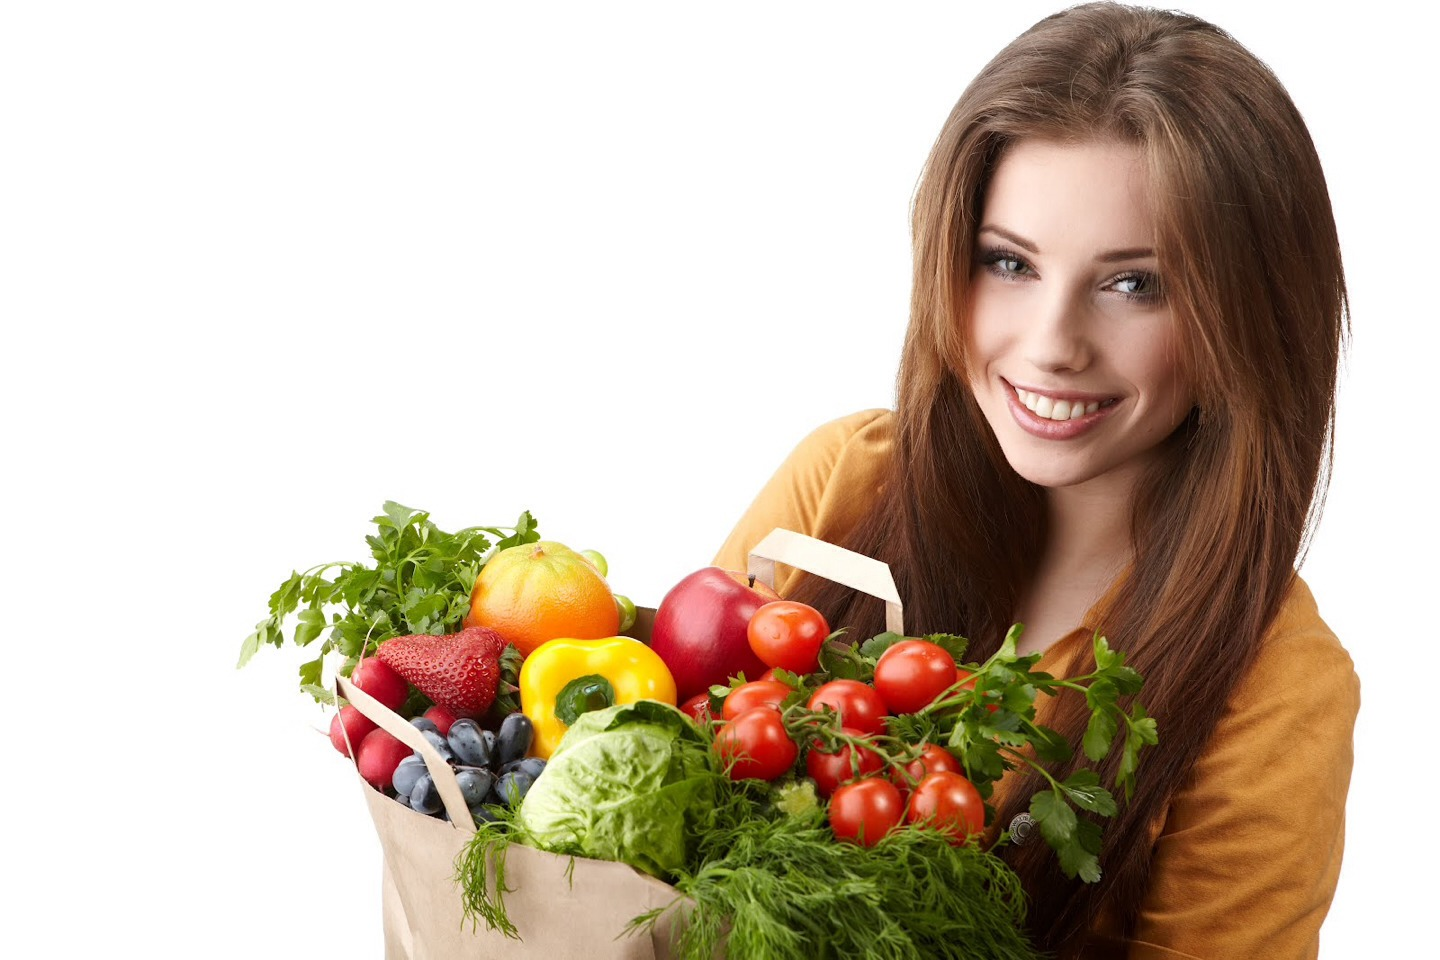 Vegetables also have a lot of water, so they help get rid of excess water weight. Because vegetables are high in volume but low in calories, eating them will help you feel full faster while consuming less calories overall.